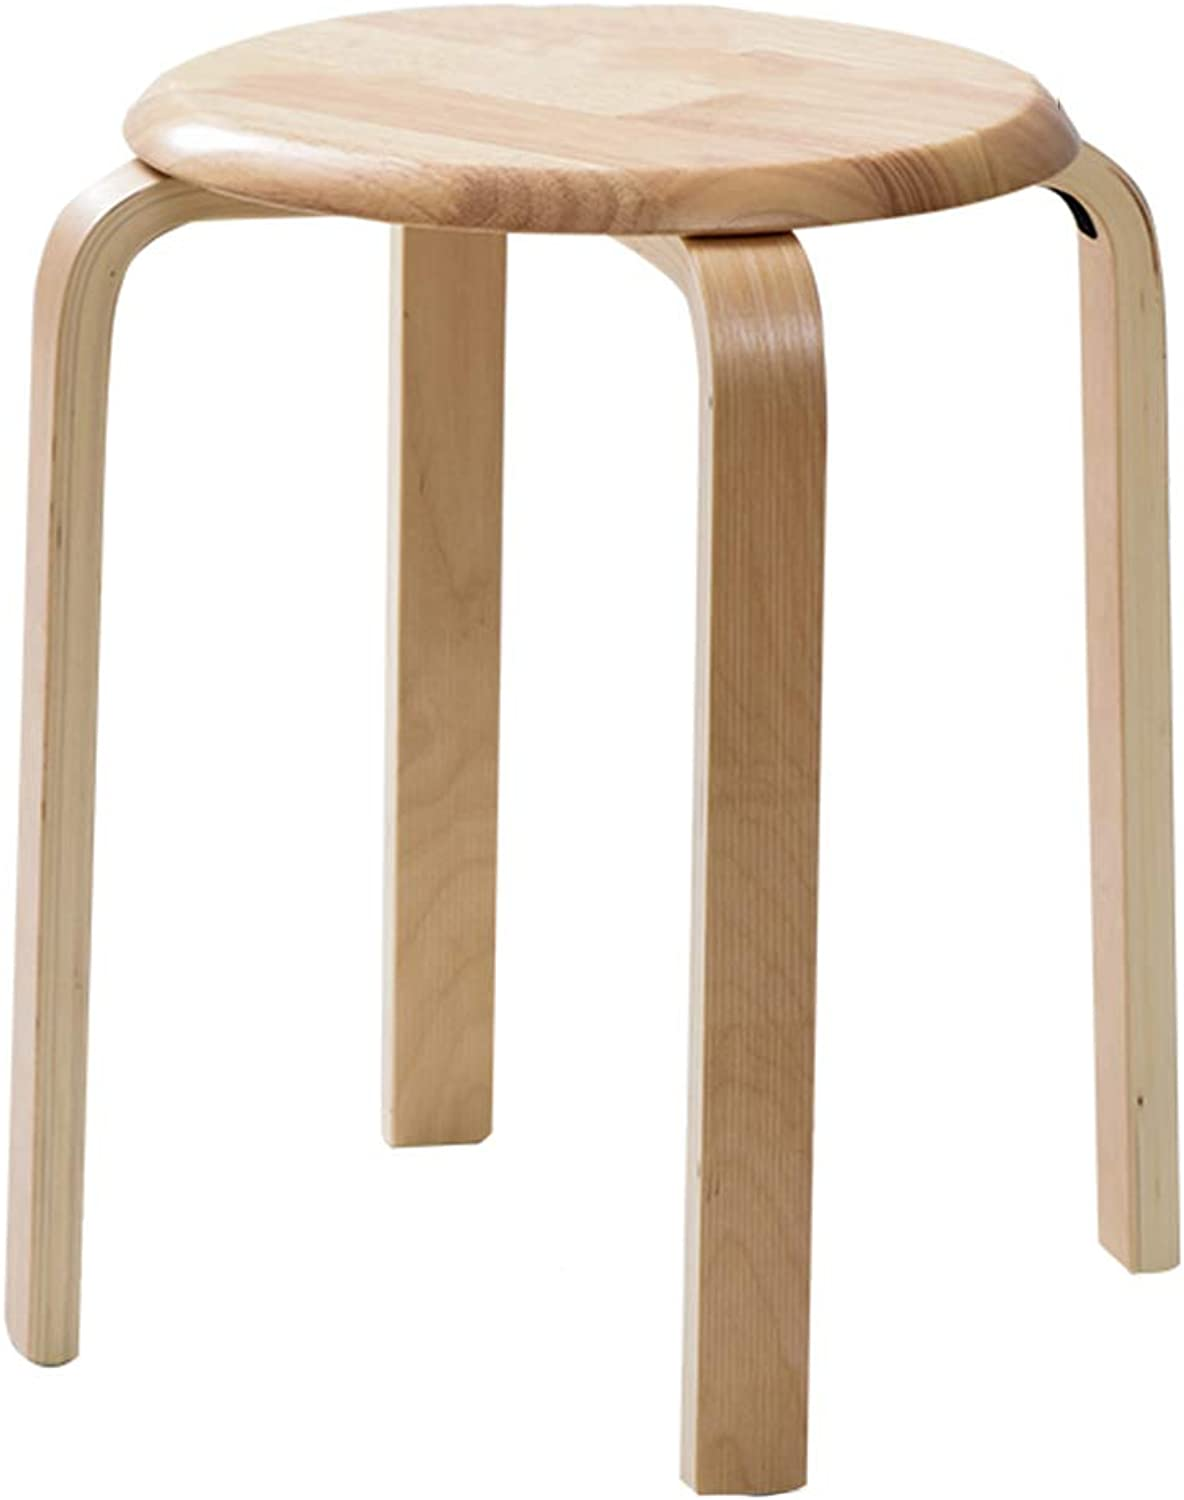 ZZHF dengzi Solid Wood Creative Heightening Round Stool Modern Dining Table Household Simple Low Stool Reinforce Non-Slip Sitting Stool (color   C)